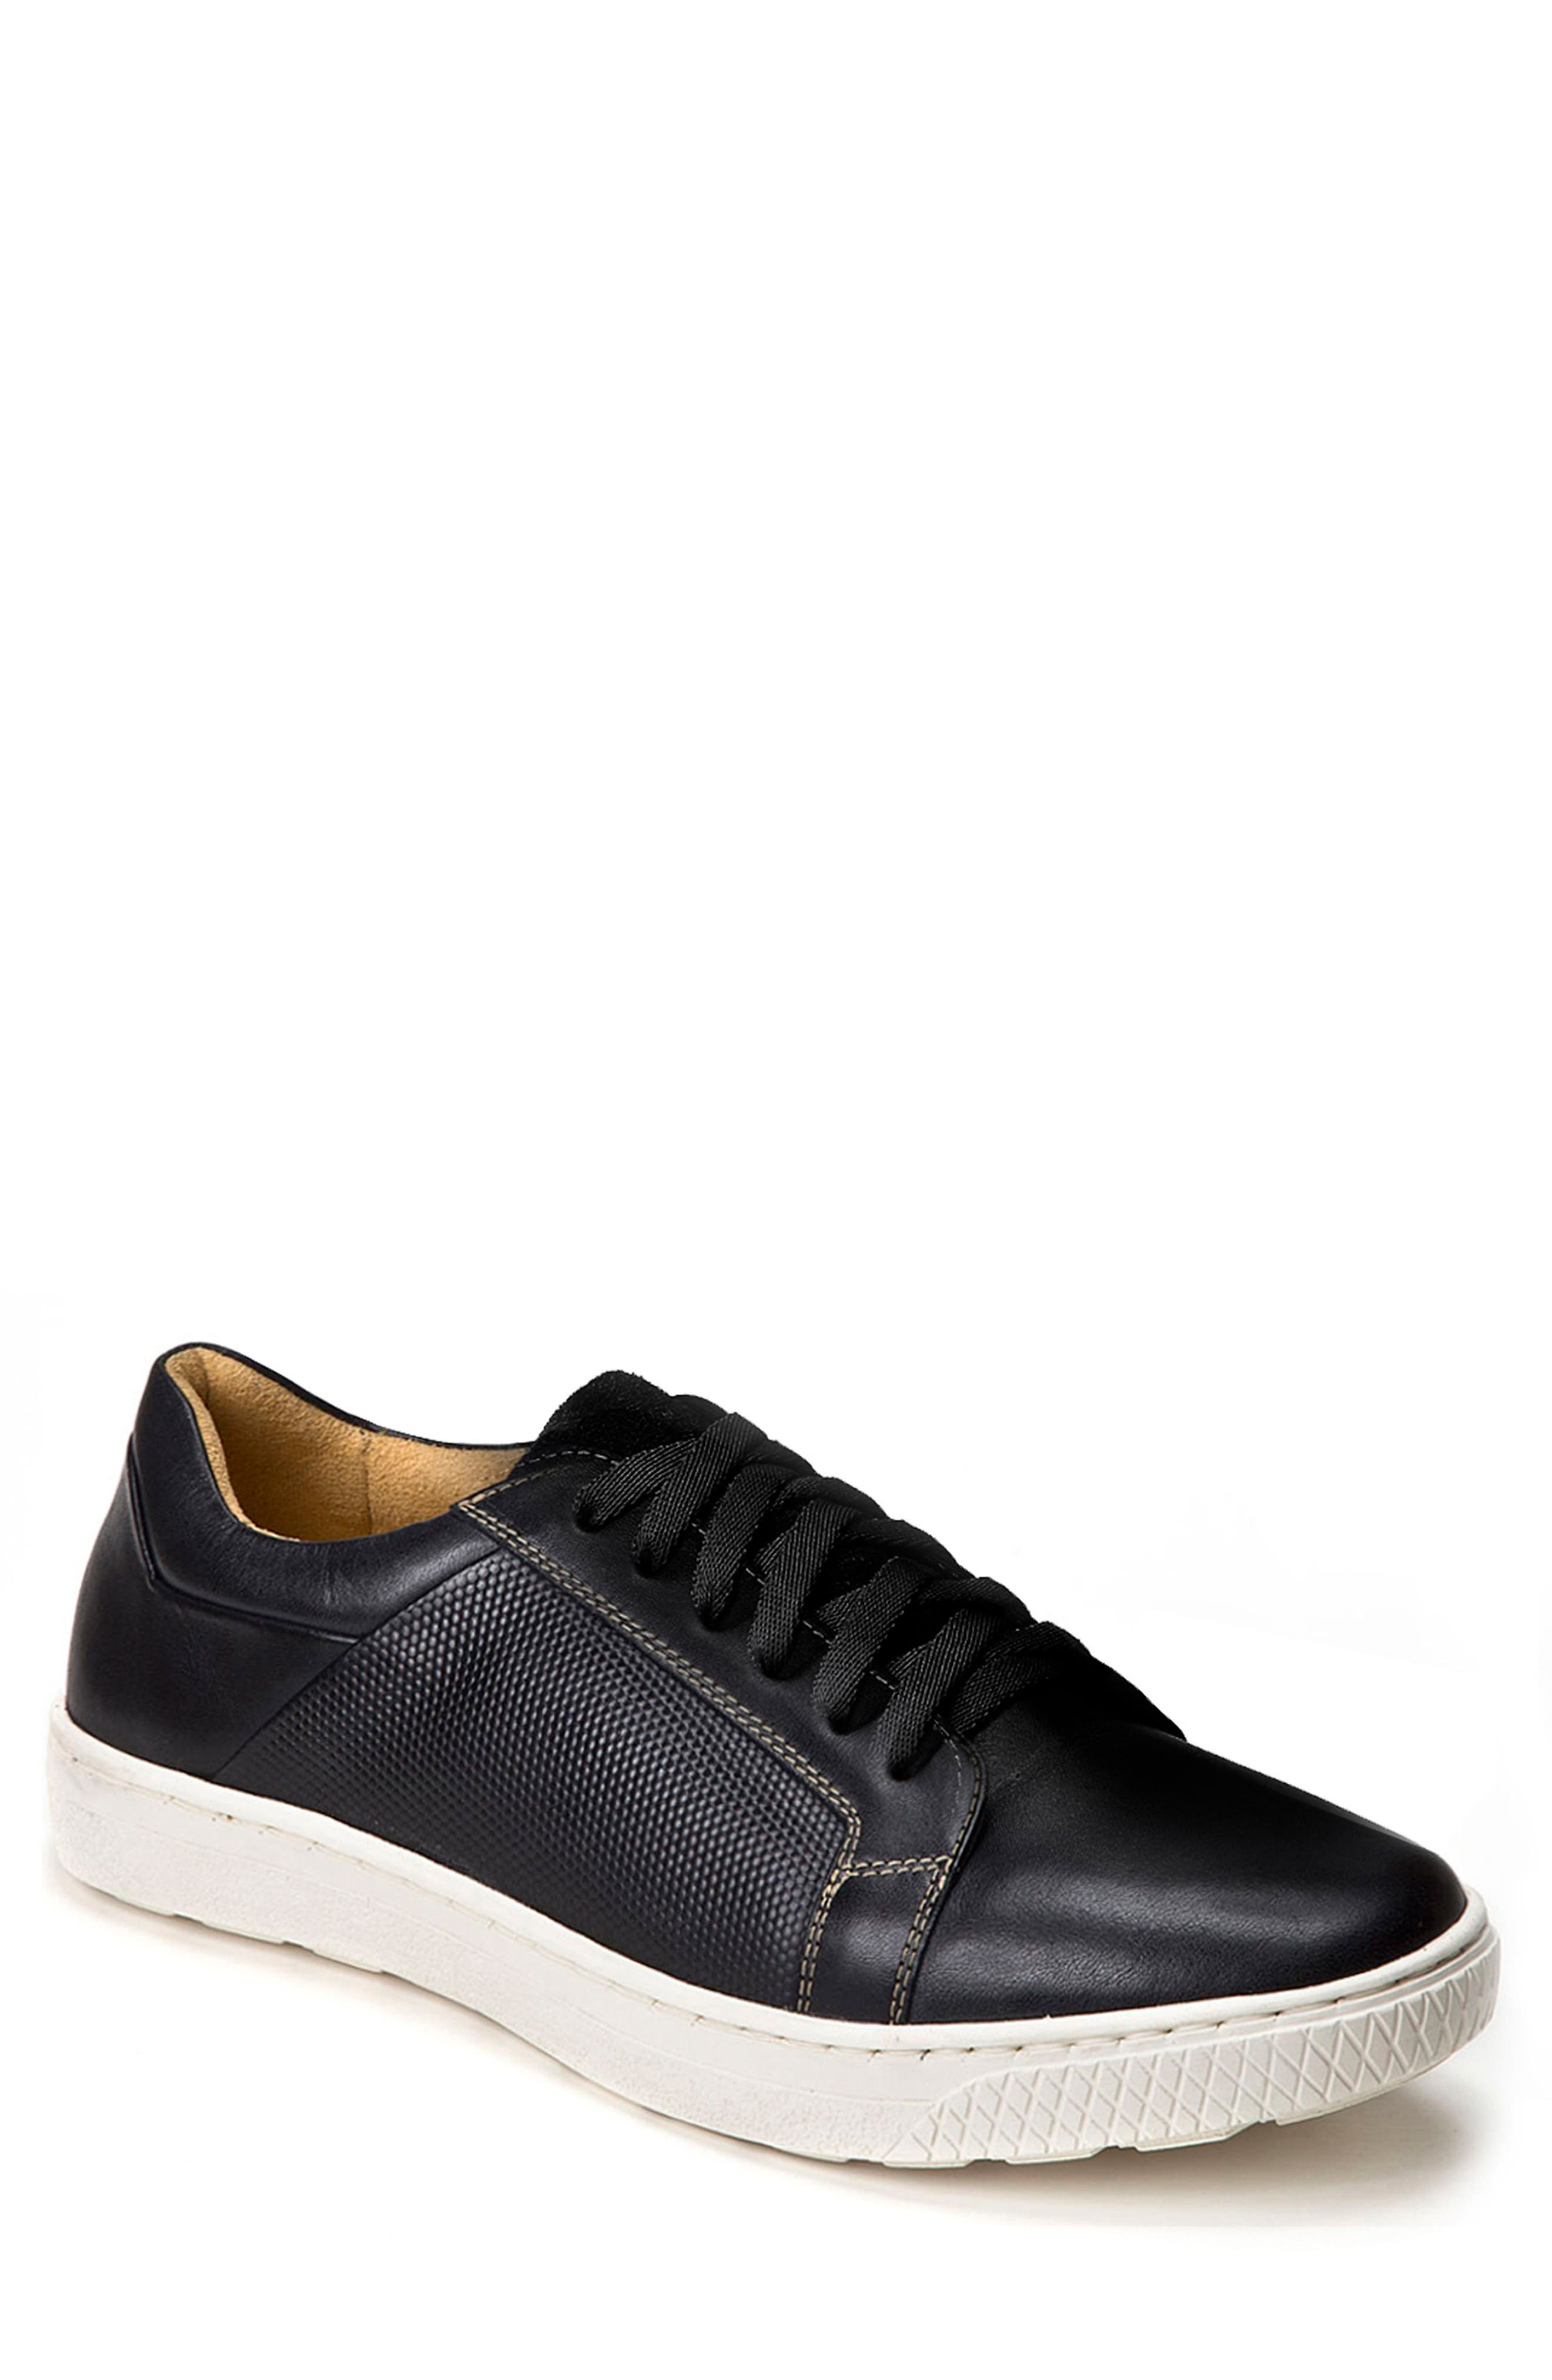 Nico Textured Sneaker,                         Main,                         color, Black Leather